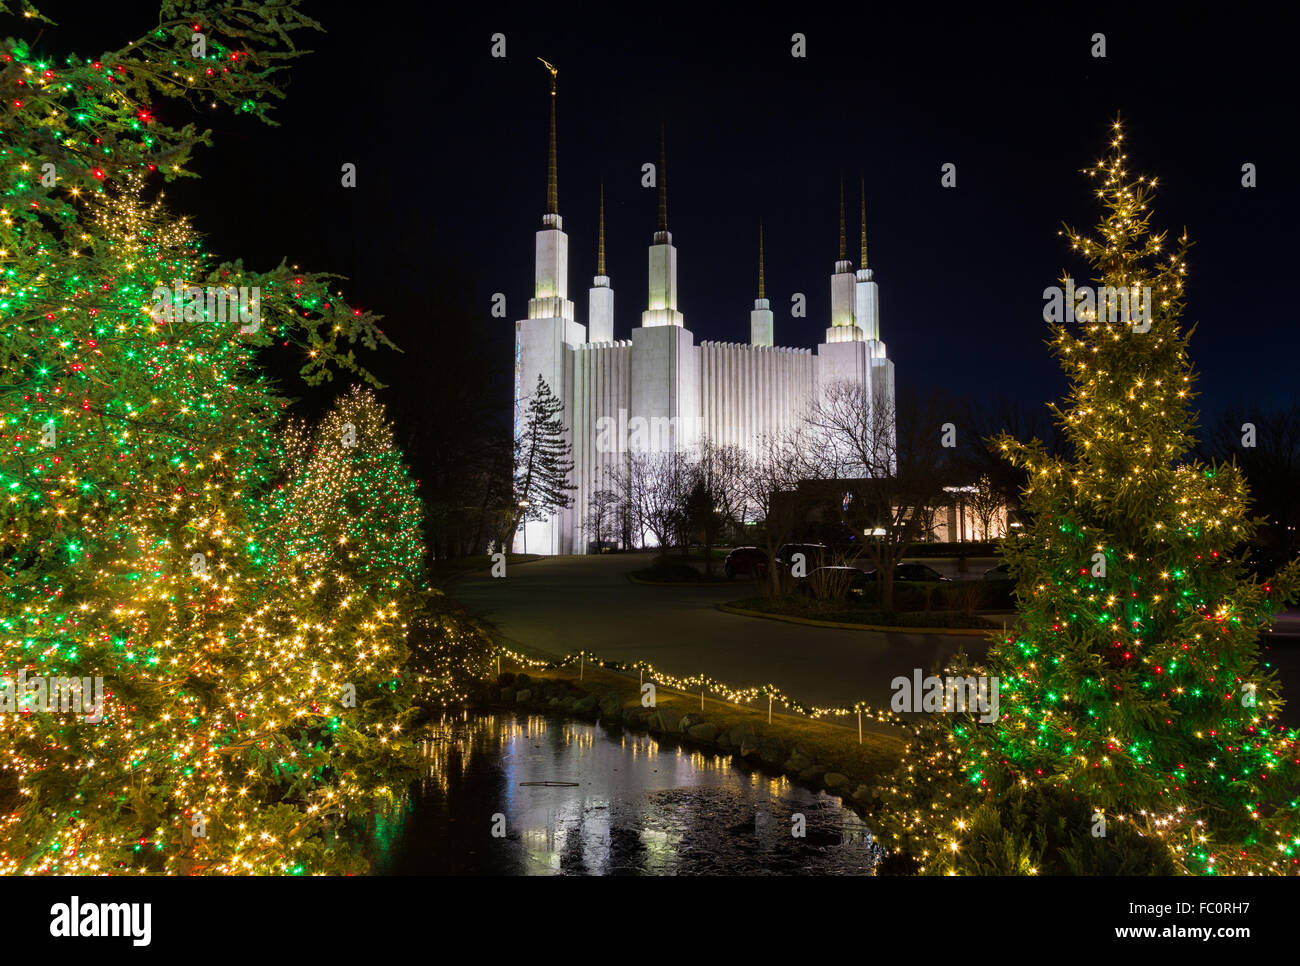 mormon temple in washington dc with xmas lights stock image - Christmas Lights In Dc